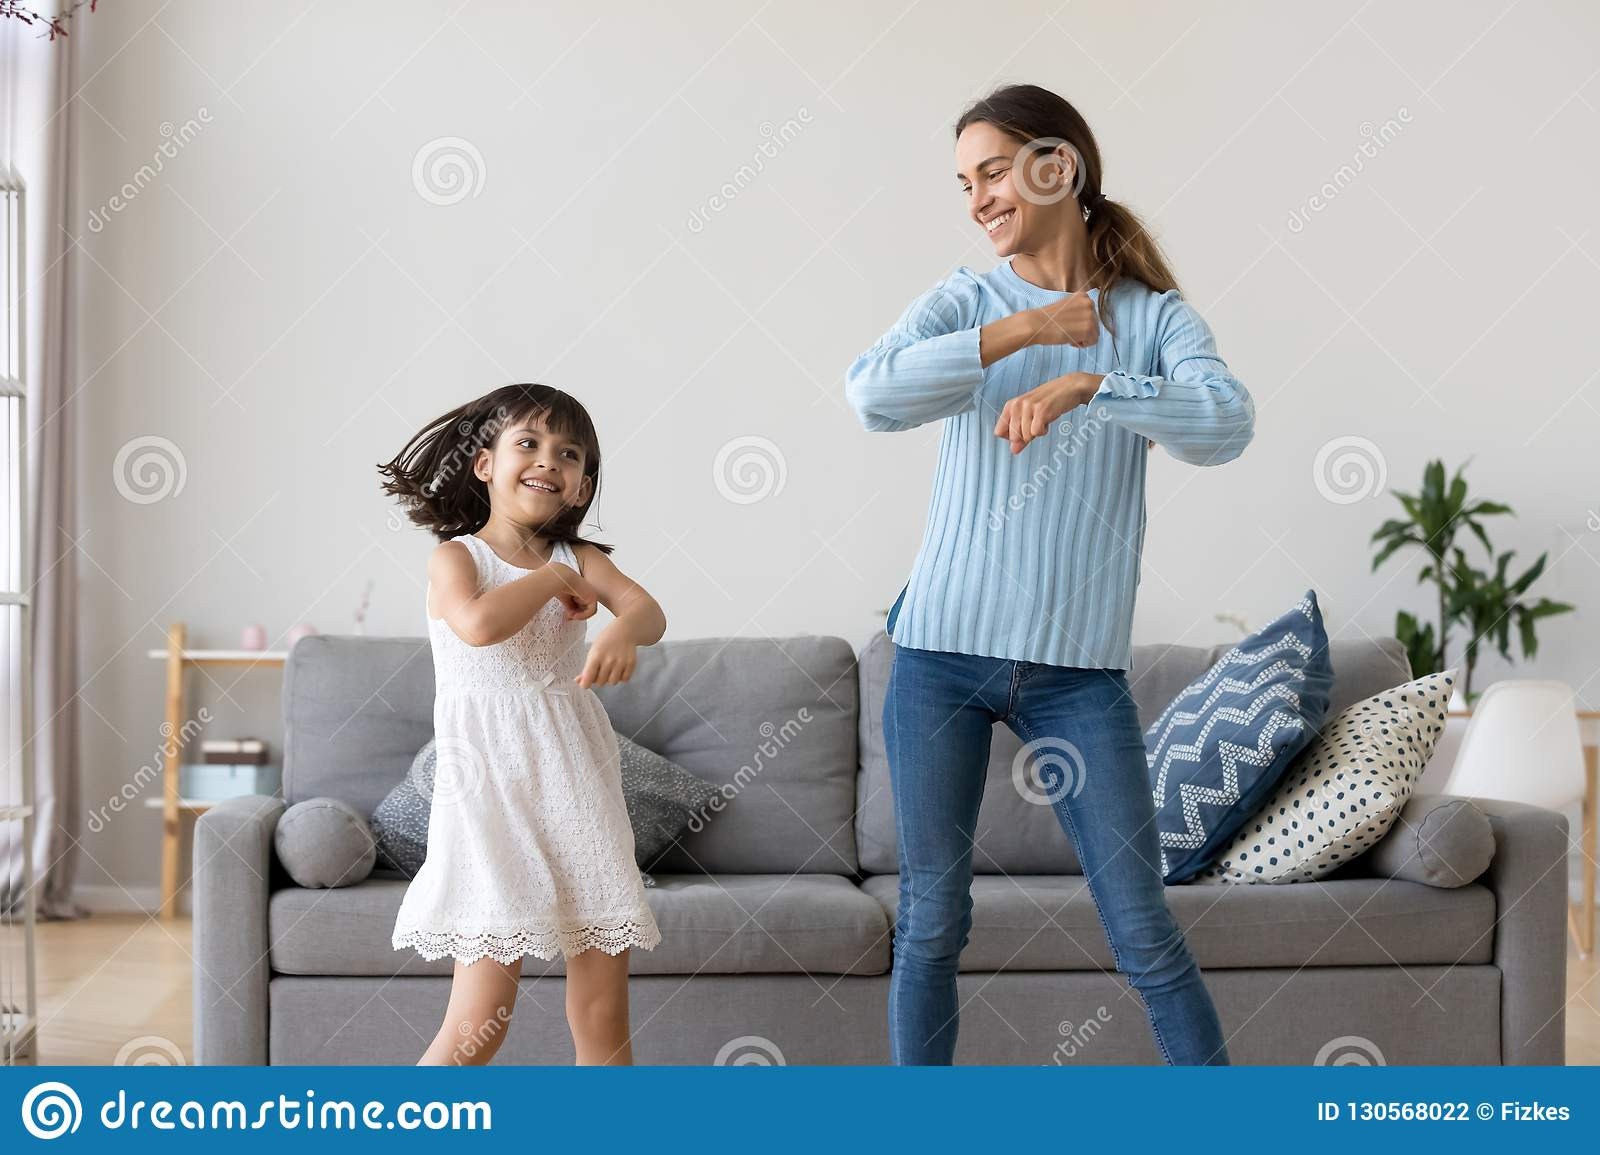 871b28f1bb Cheerful mother little daughter standing in living room at home moving  dancing to favourite song together. Child have fun with elder sister nanny  or loving ...